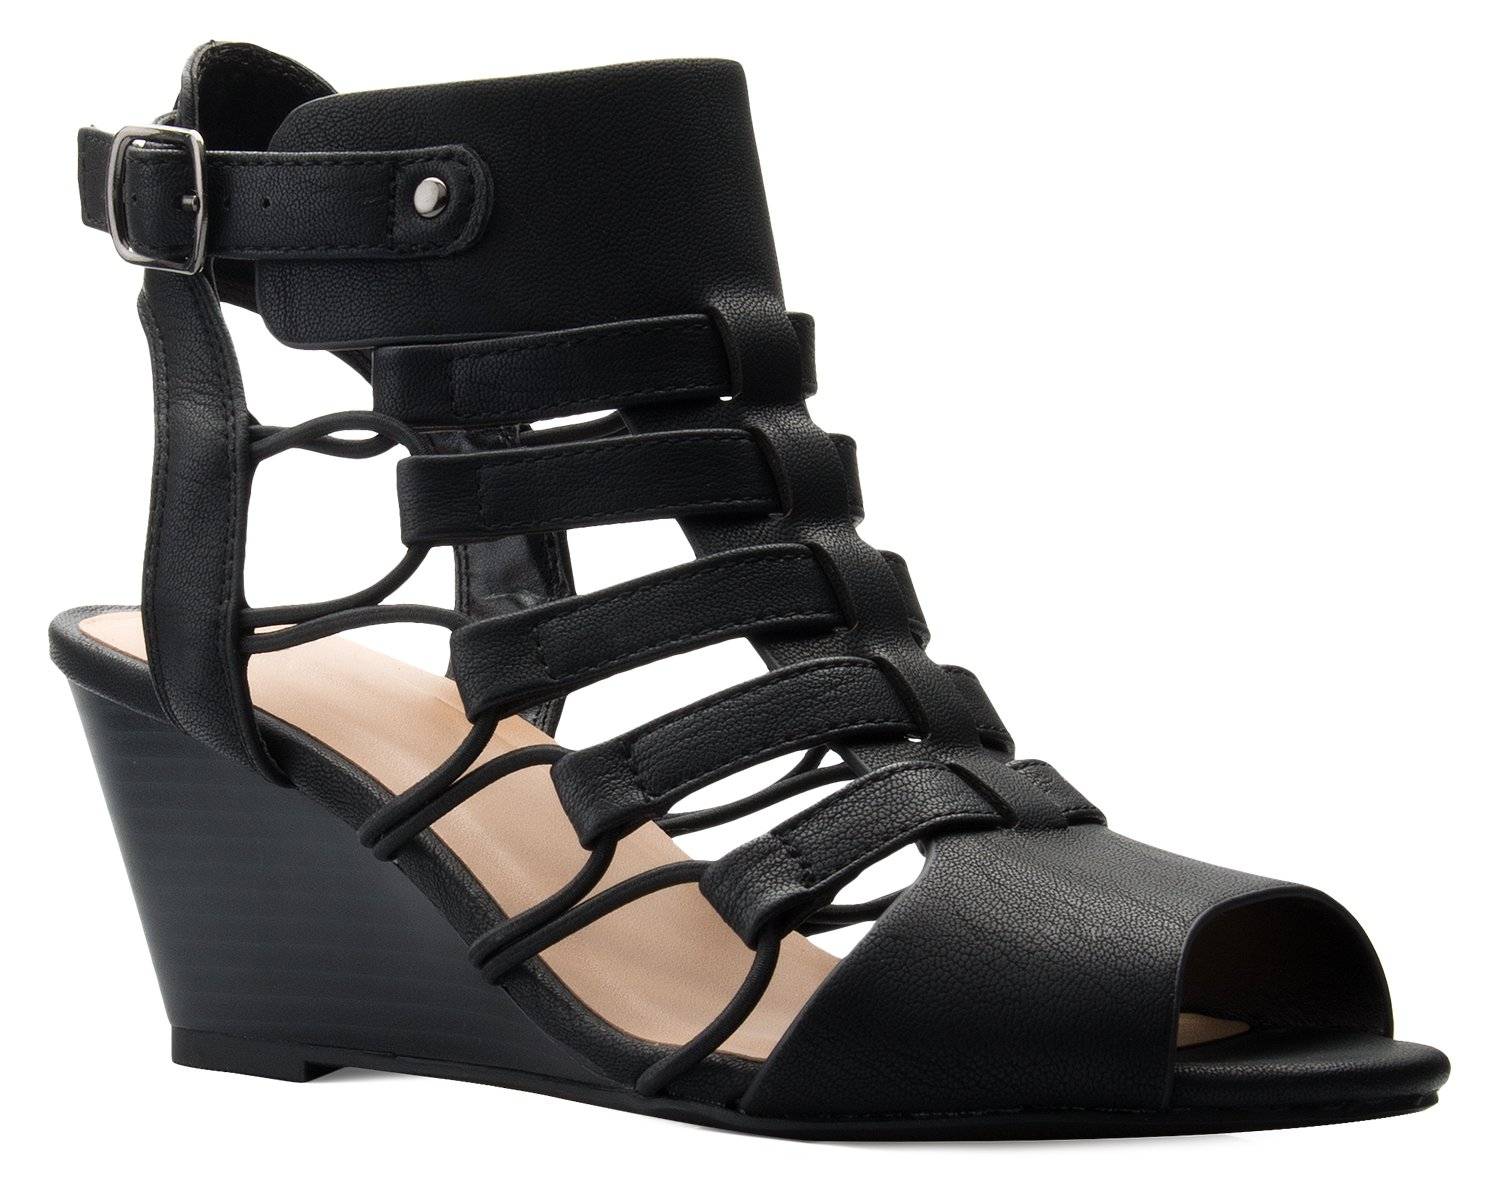 OLIVIA K Women's Strappy Cord Wedge Sandals - Sexy Open Toe Heel - Comfort, Fasionable, Casual Style